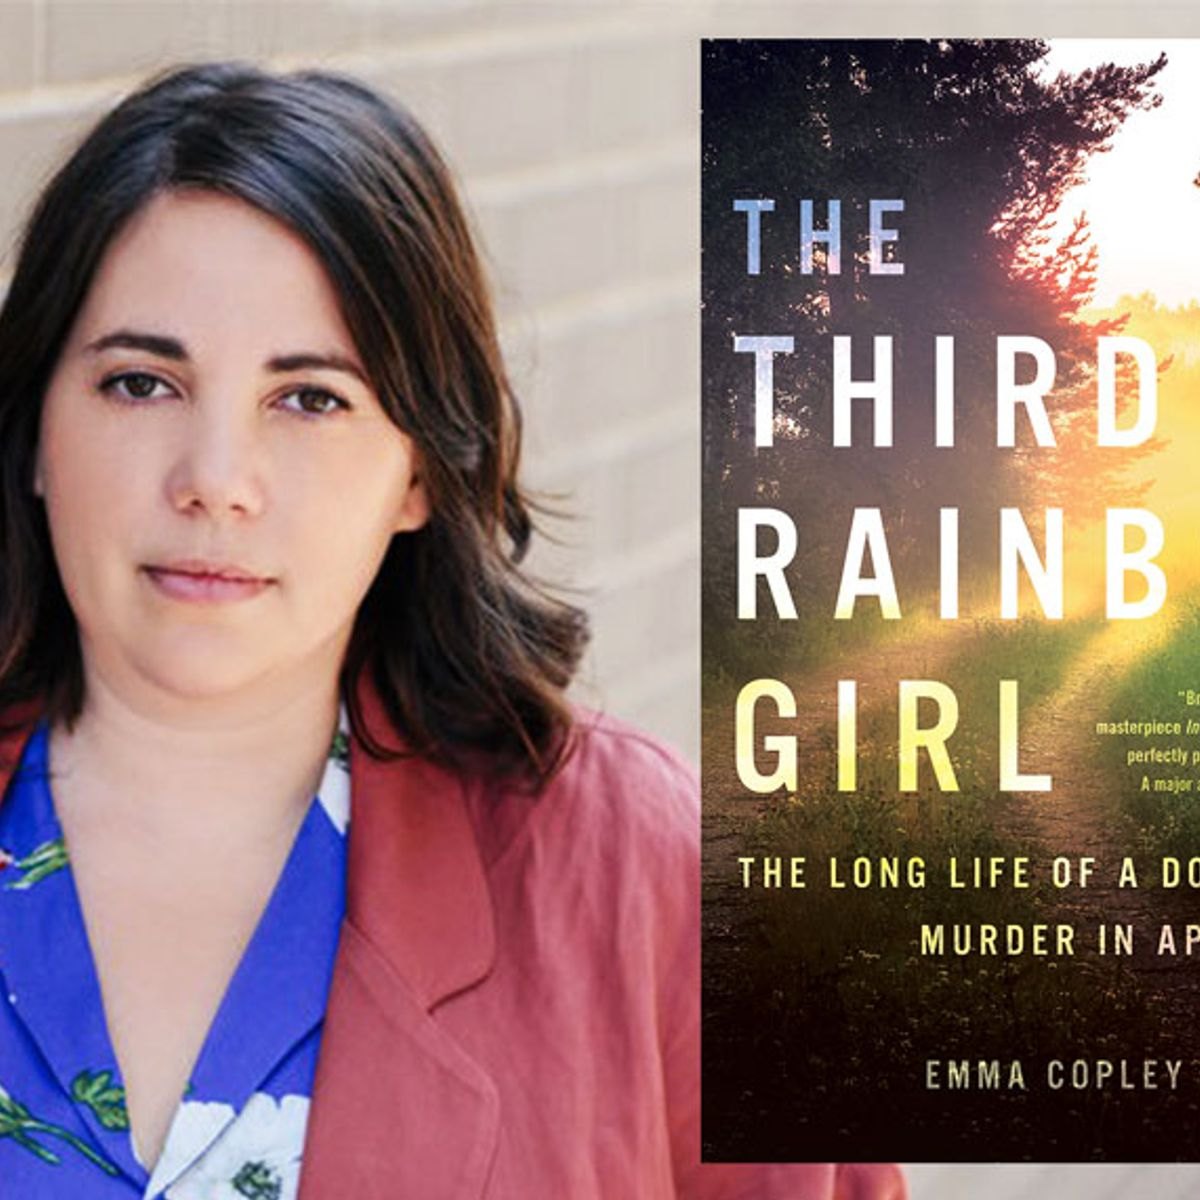 """The Third Rainbow Girl"" author on the true story of a double murder she didn't set out to write"